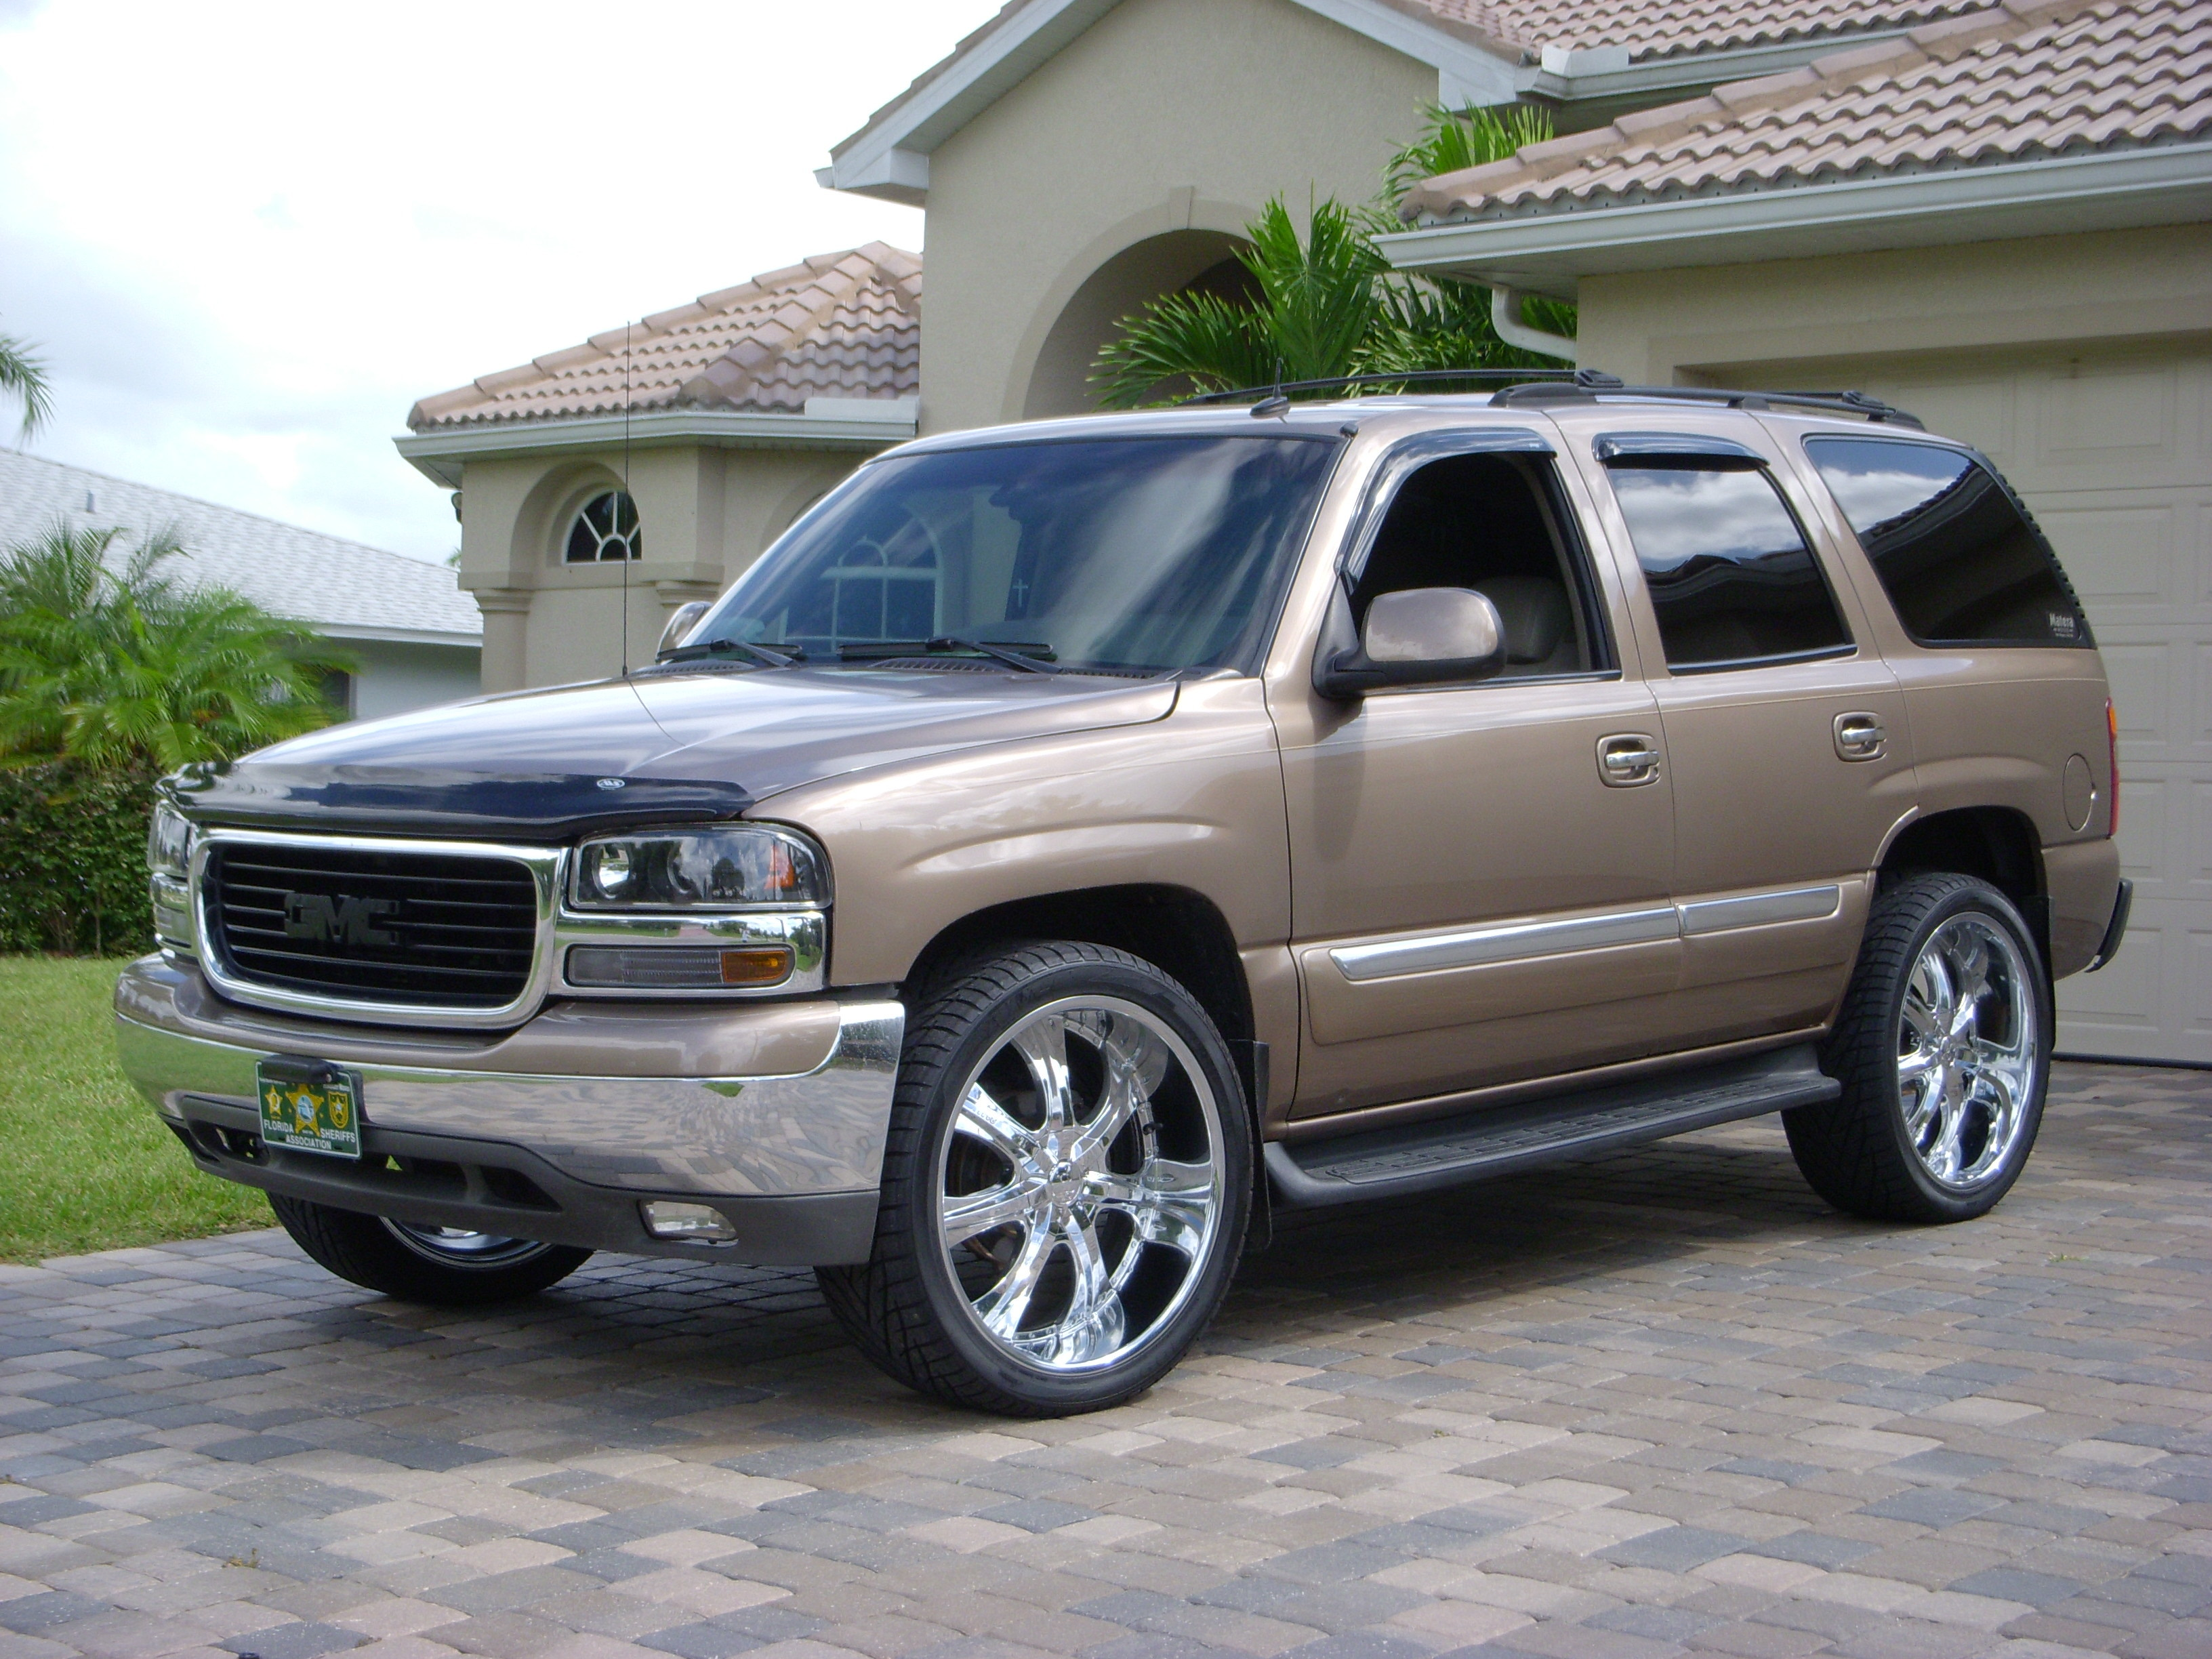 06 Sorento Engine Diagrams together with Used 2003 Chevrolet Avalanche Safety Edmunds as well 2009 Chevy Aveo Temperature Sensor Location also Exhaust Manifold Gasket additionally Abs Wheel Speed Sensor. on 2003 chevy malibu recalls